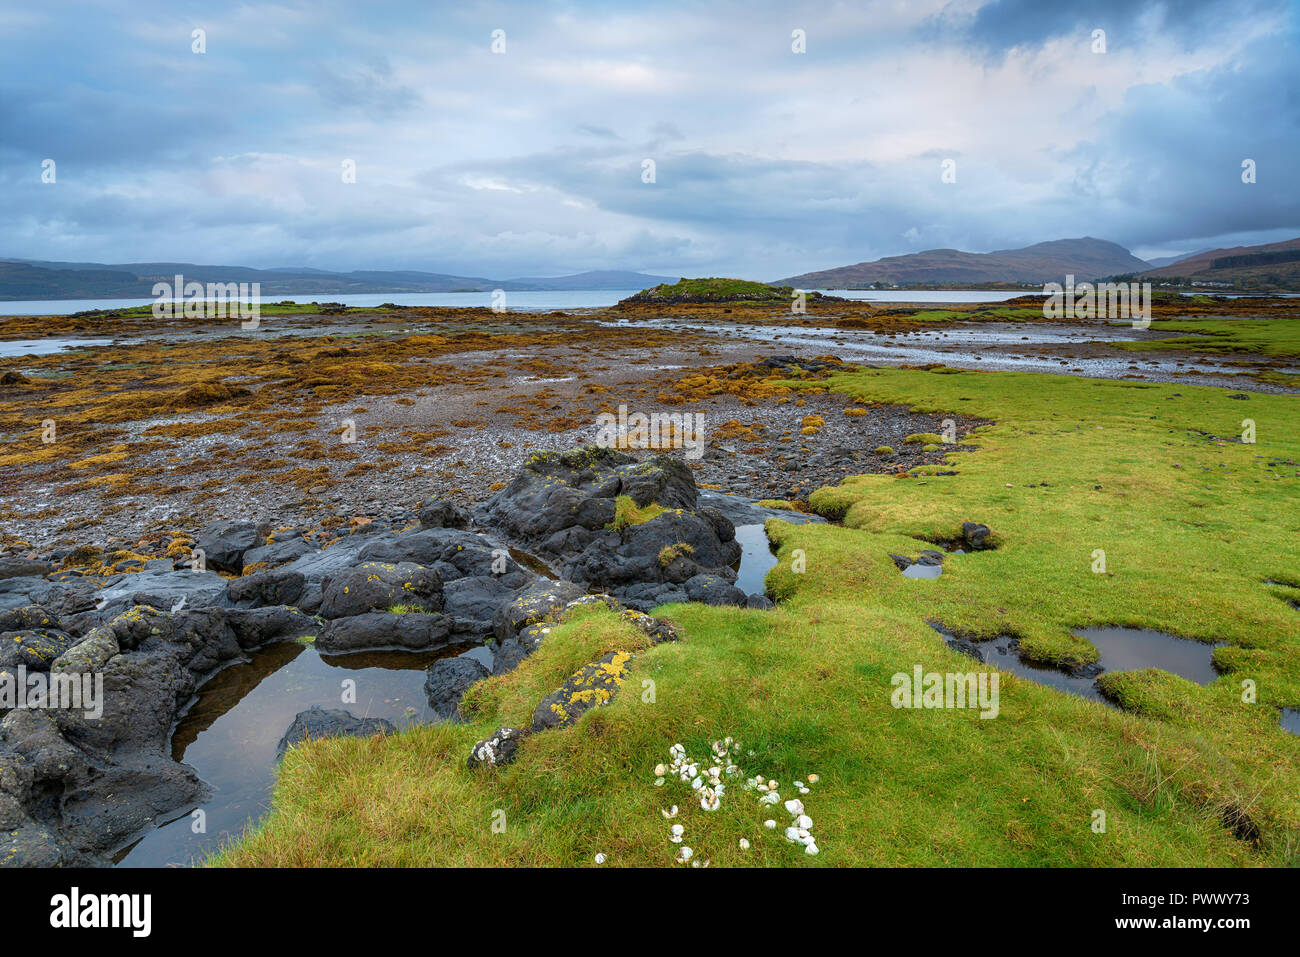 On the shores of the Sound of Mull near Salen on the Isle of Mull in Scotland Stock Photo